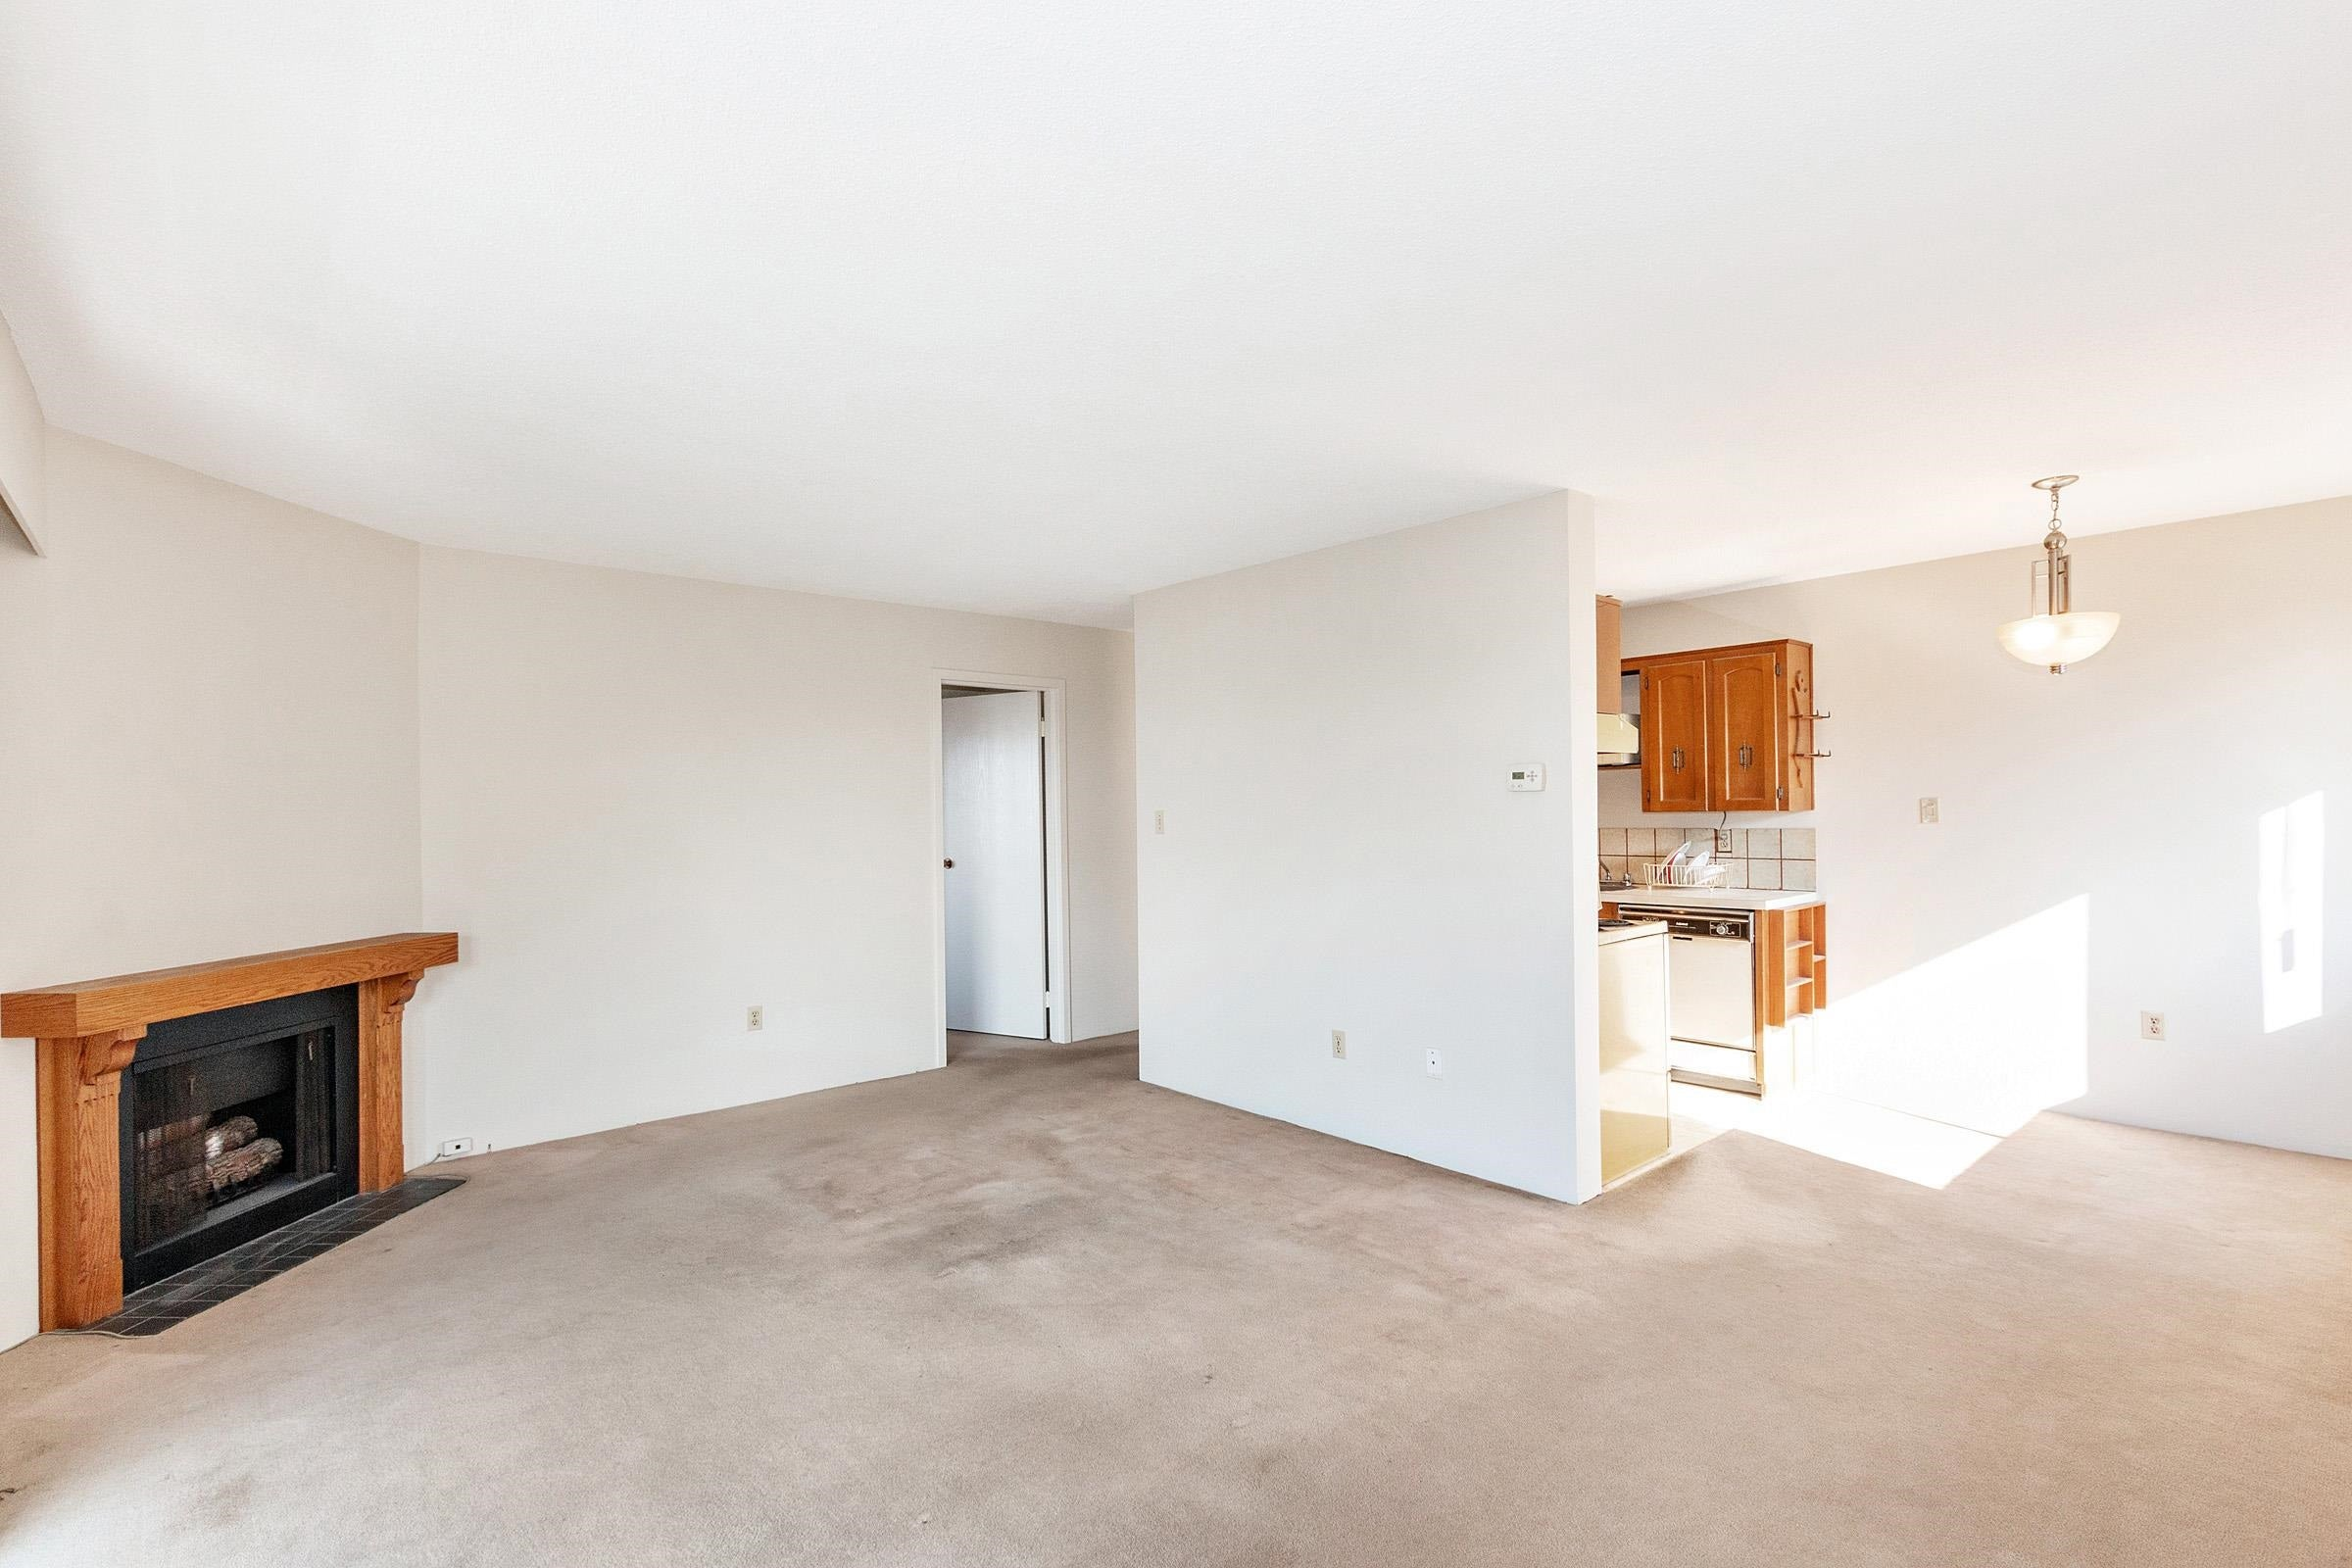 301 264 W 2ND STREET - Lower Lonsdale Apartment/Condo for sale, 2 Bedrooms (R2625527) - #7